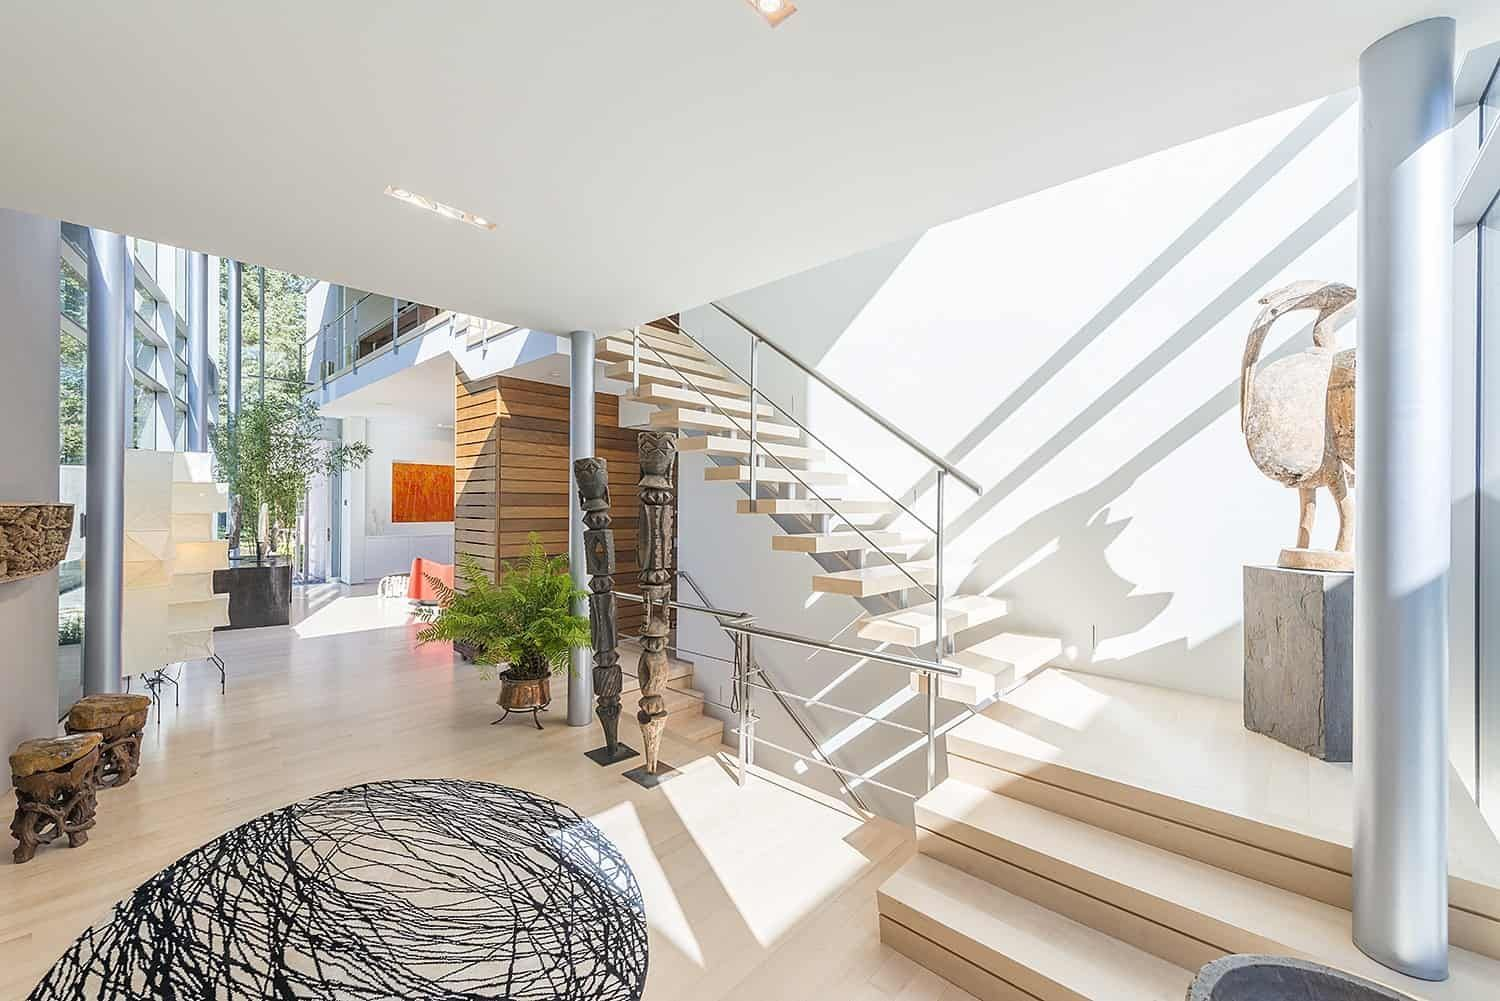 Best Striking East Hampton Property Engages With Its Surroundings Property The Hamptons 400 x 300